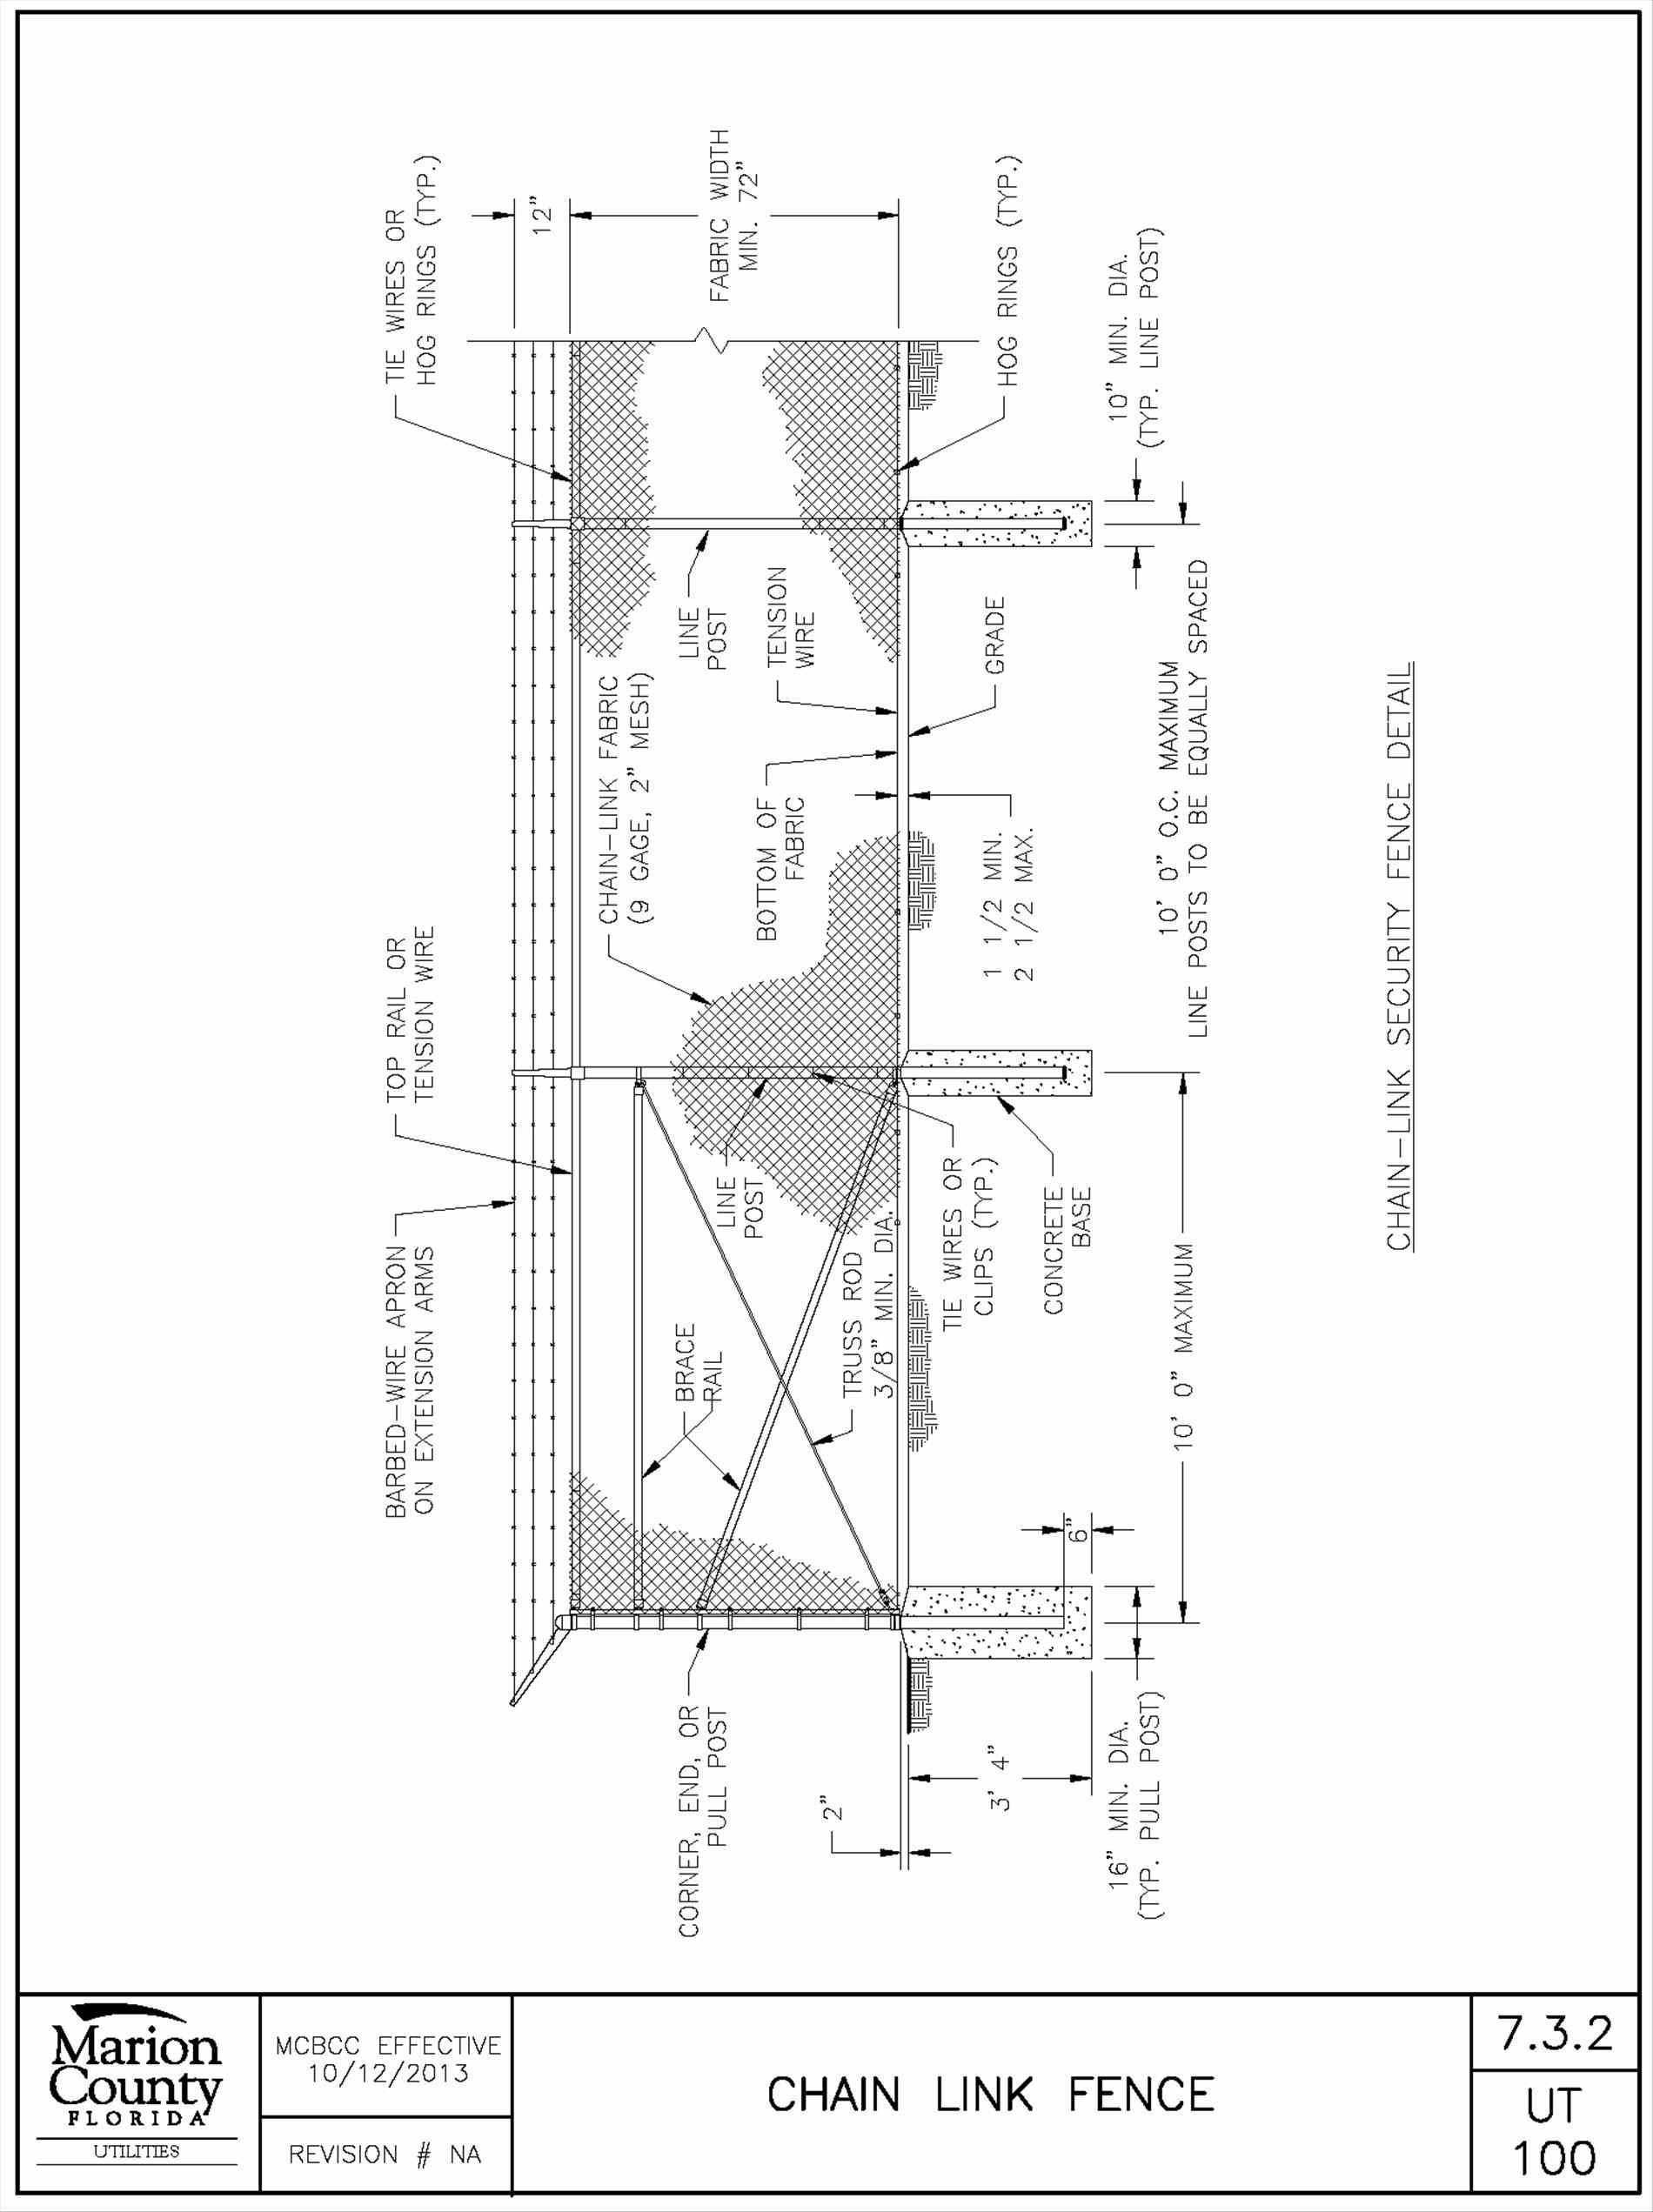 Chain Link Fence Drawings Cad • Fences Design